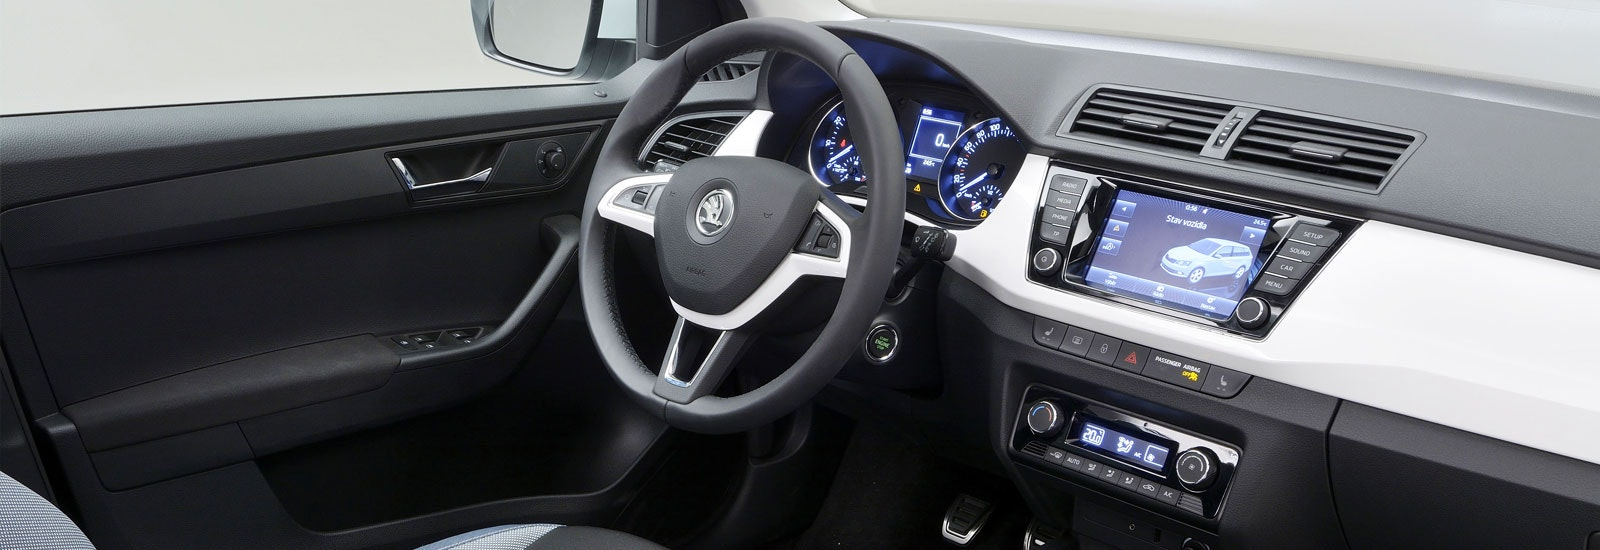 2019 Skoda Fabia Price Specs And Release Date Carwow